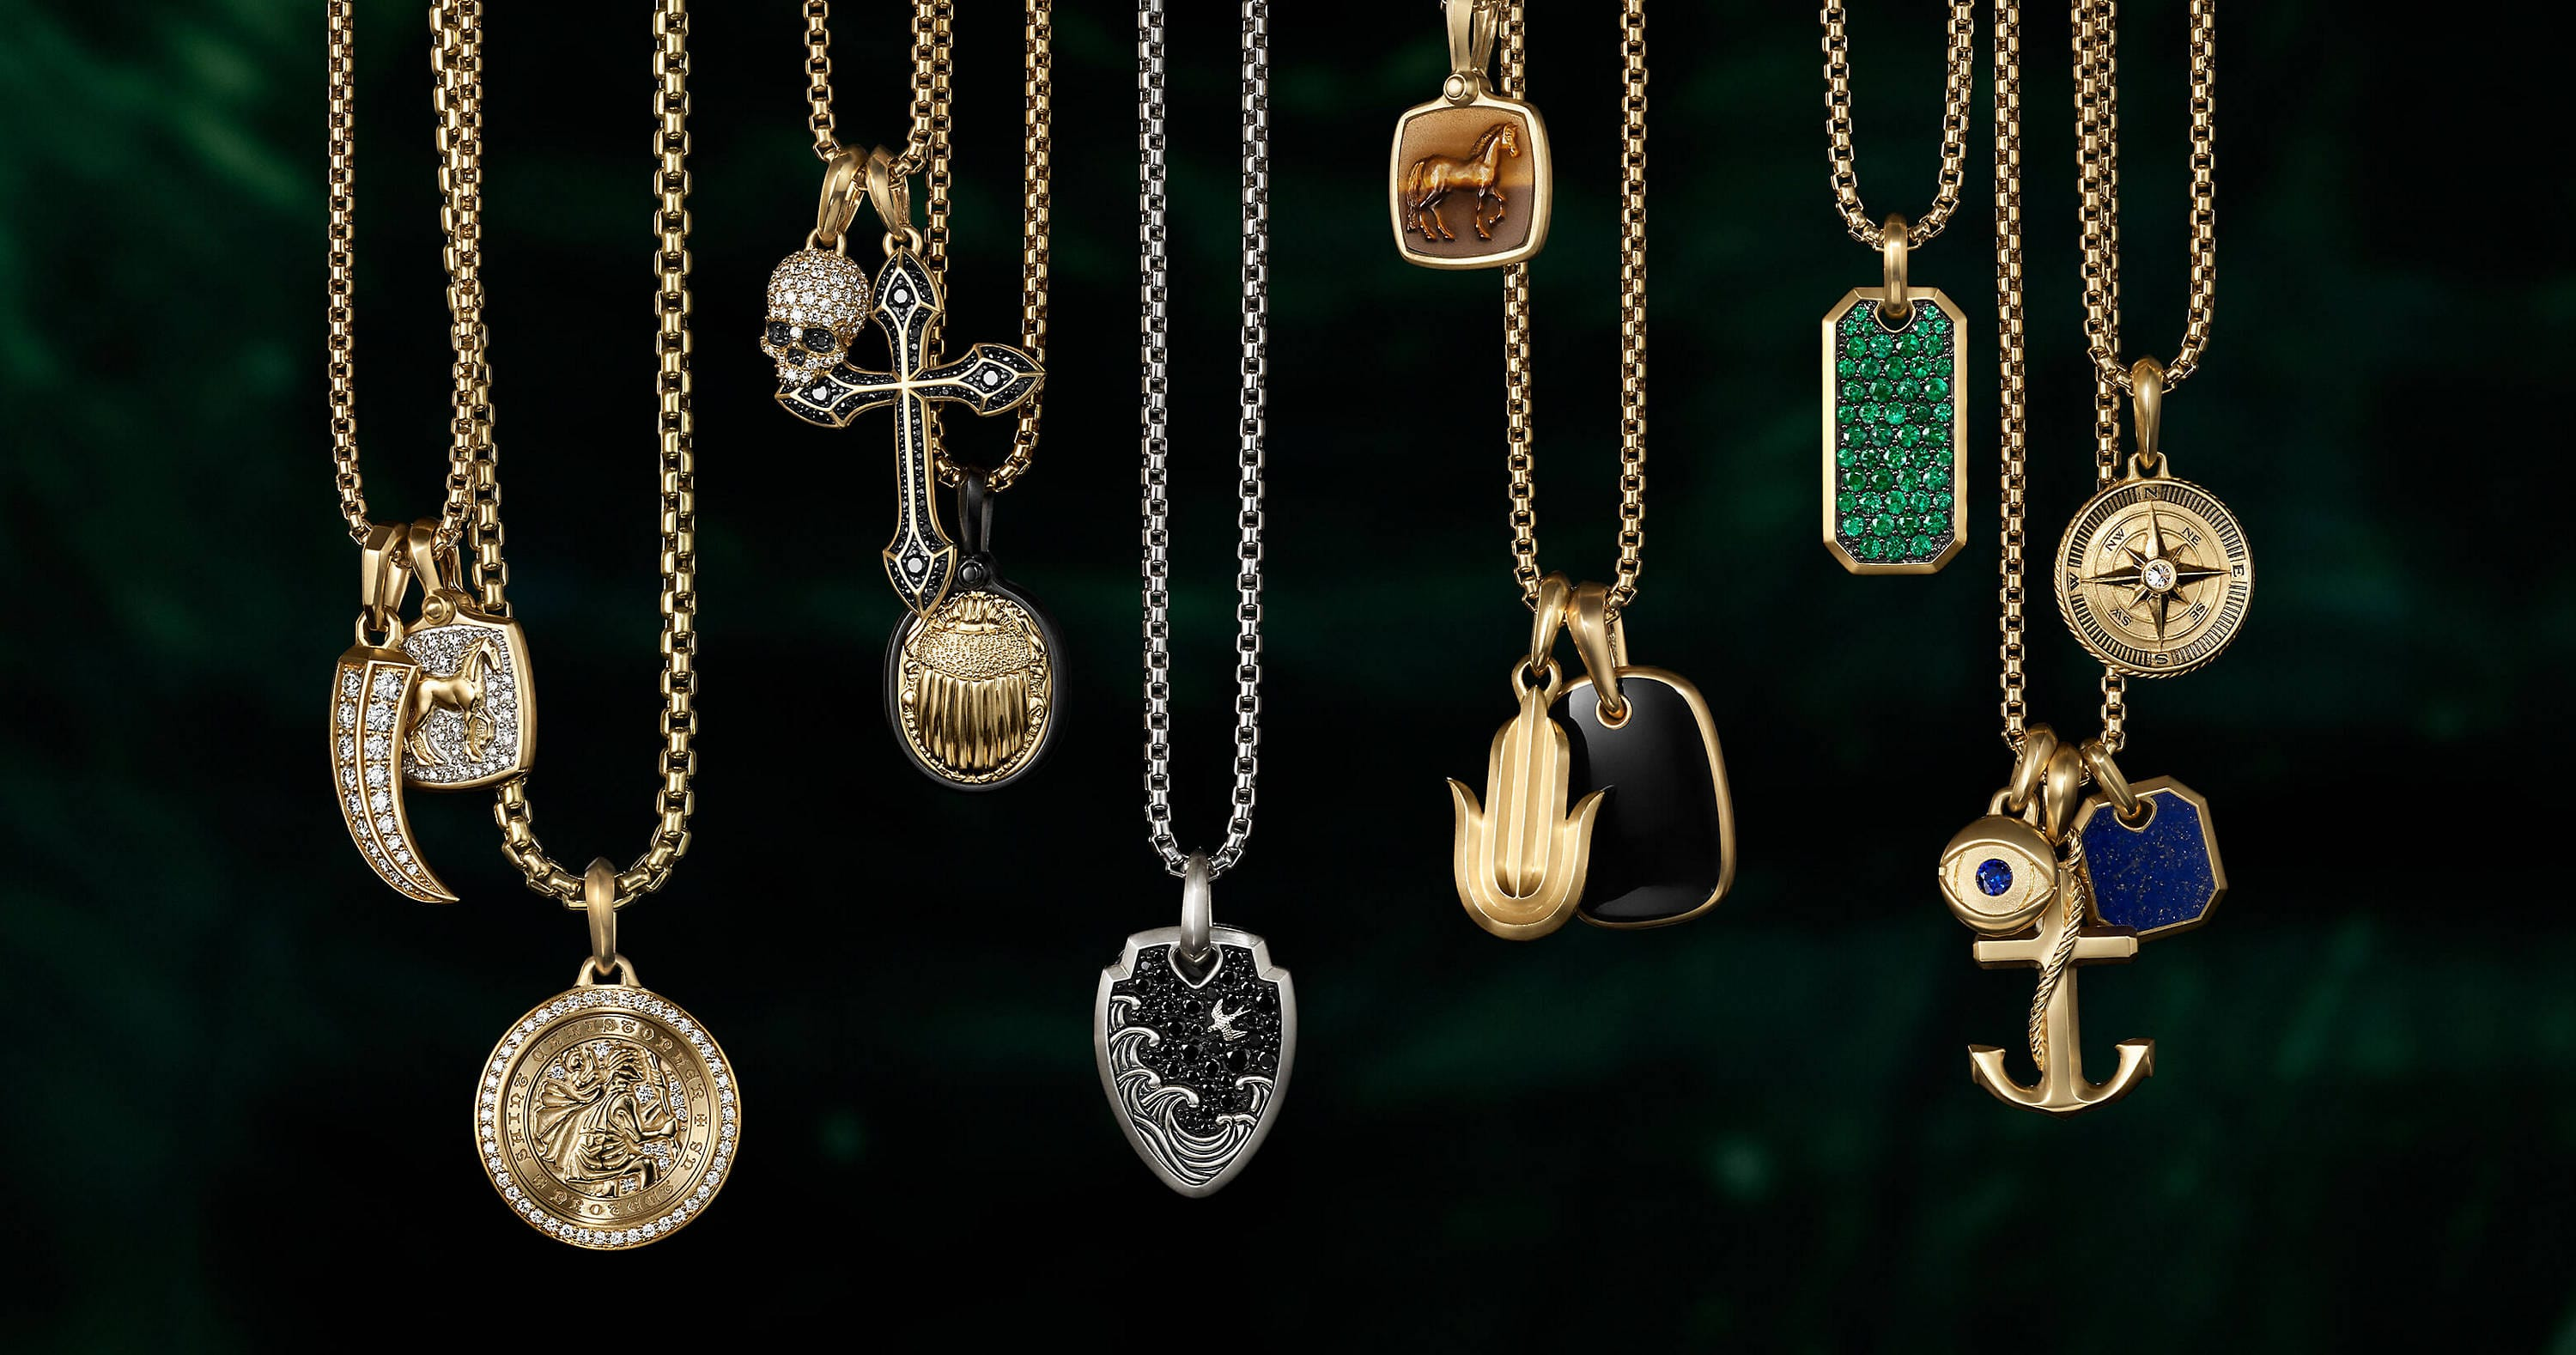 A color photograph shows a horizontal row of four David Yurman men's tags from the Streamline, Chevron and Pavé collections hanging on box-chain necklaces at different levels in front of gray concrete cubes with graphic shadows. The tags are crafted from sterling silver with 18K yellow gold, sterling silver with or without black onyx and black titanium with pavé black diamonds. The chains are crafted from 18K yellow gold, sterling silver or black titanium.